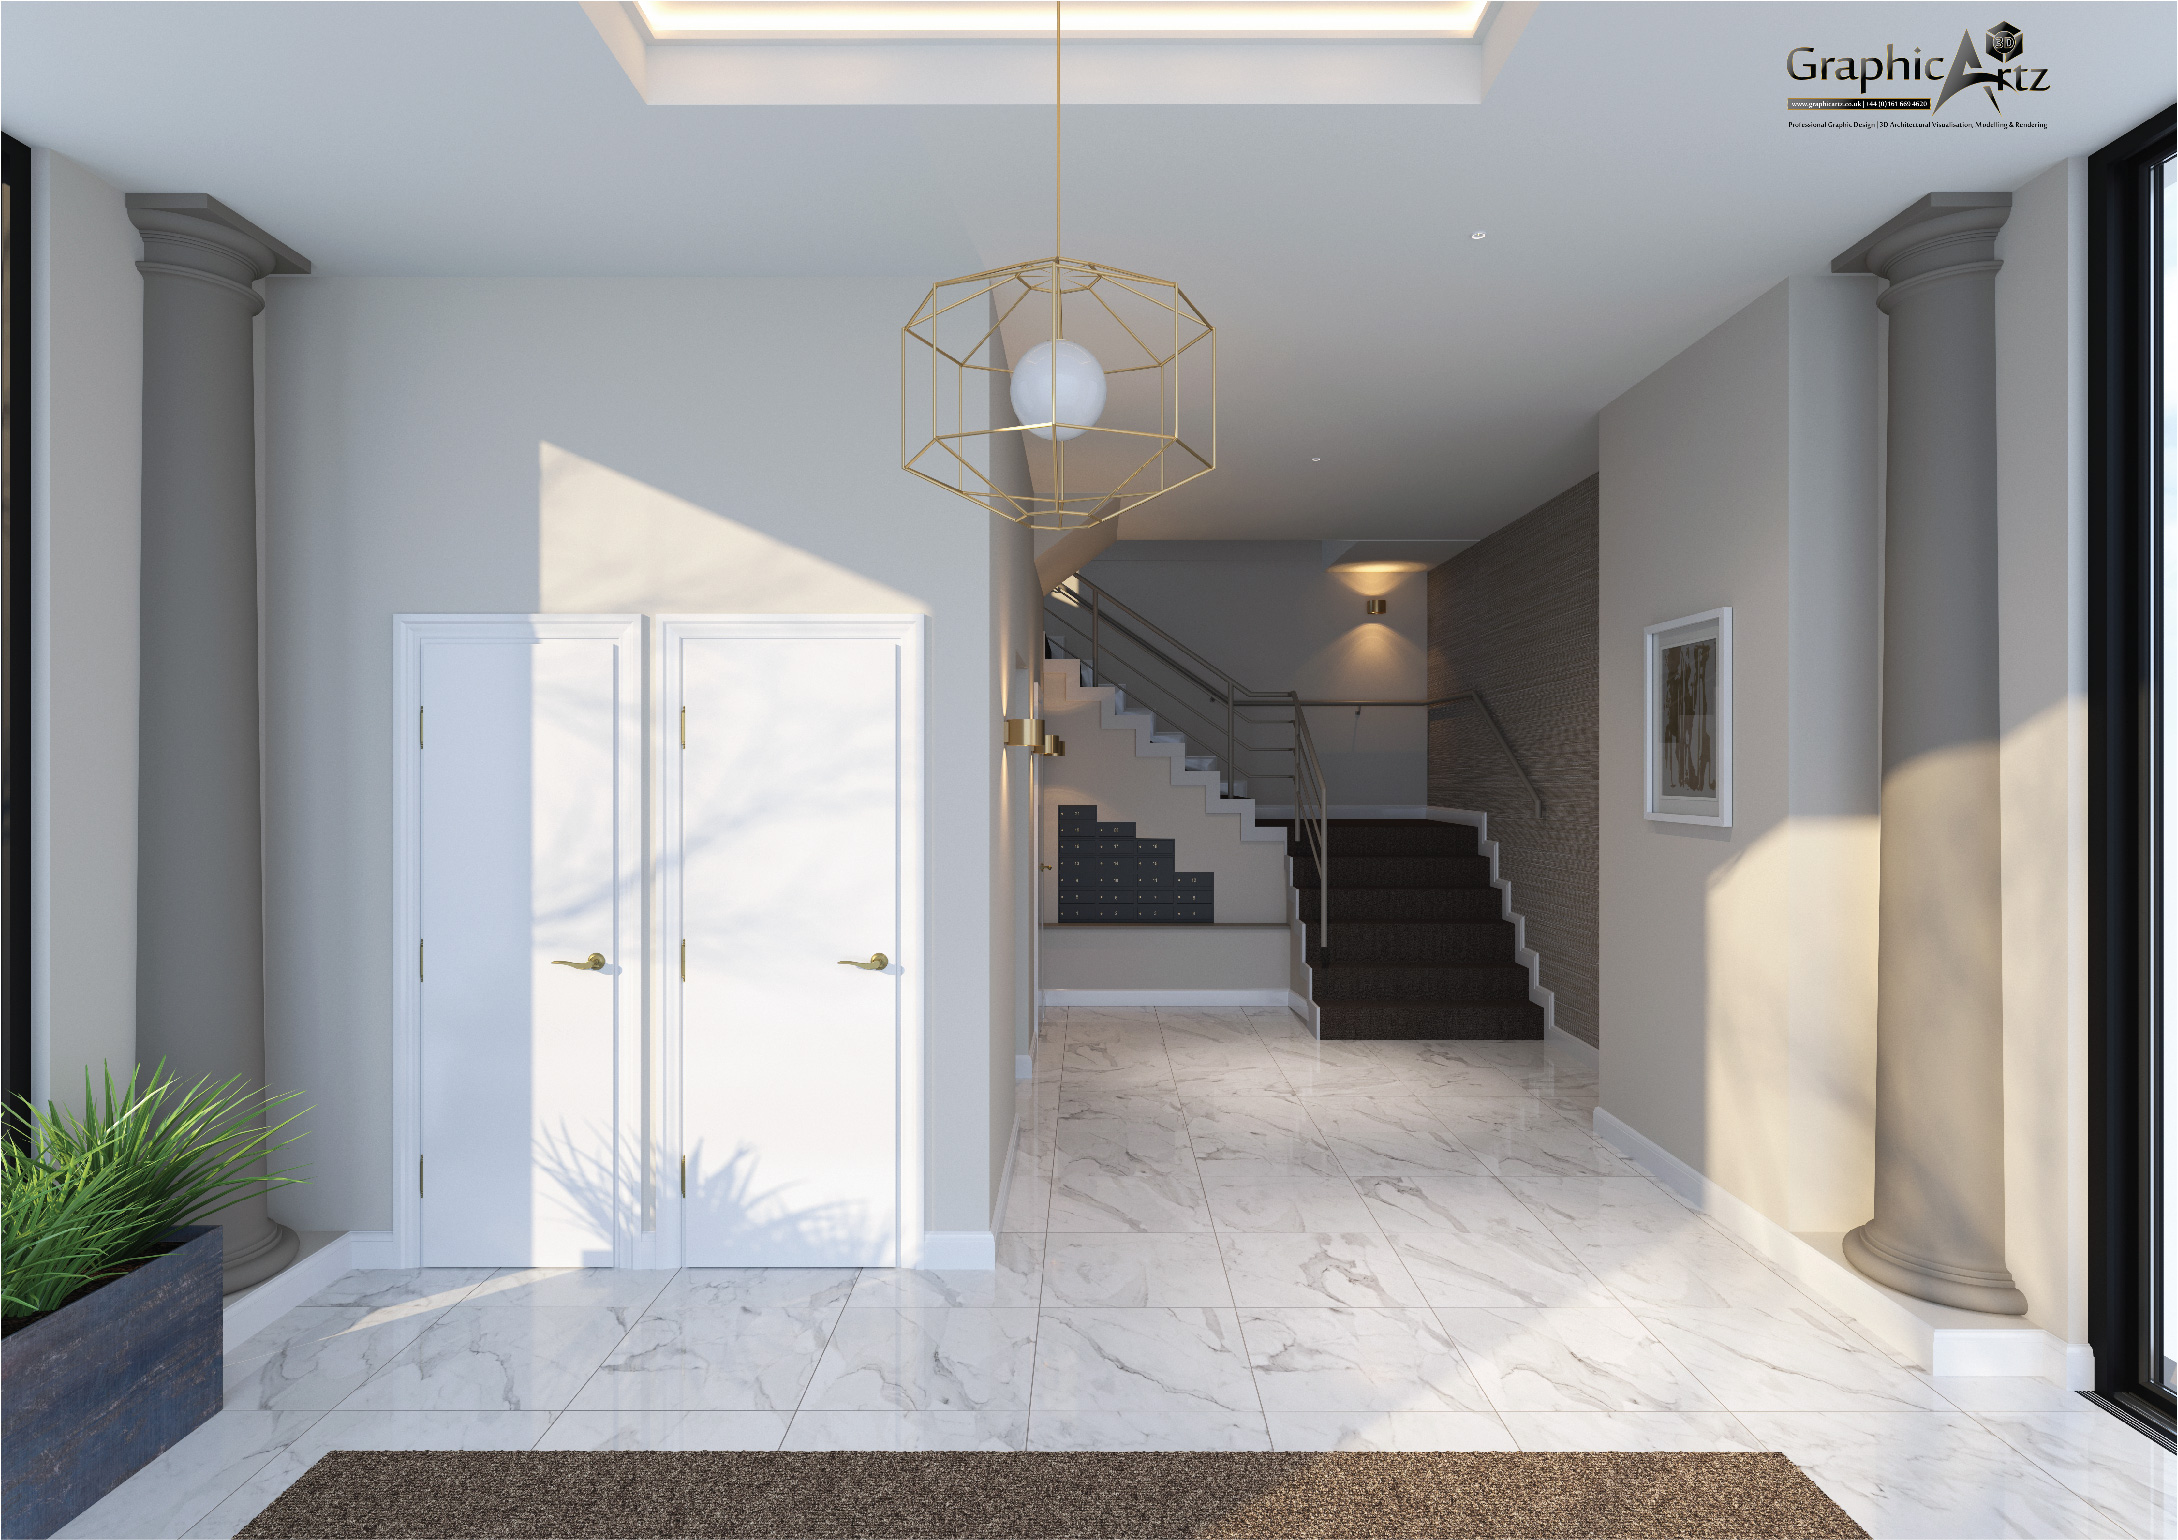 Hall home Interior CGI